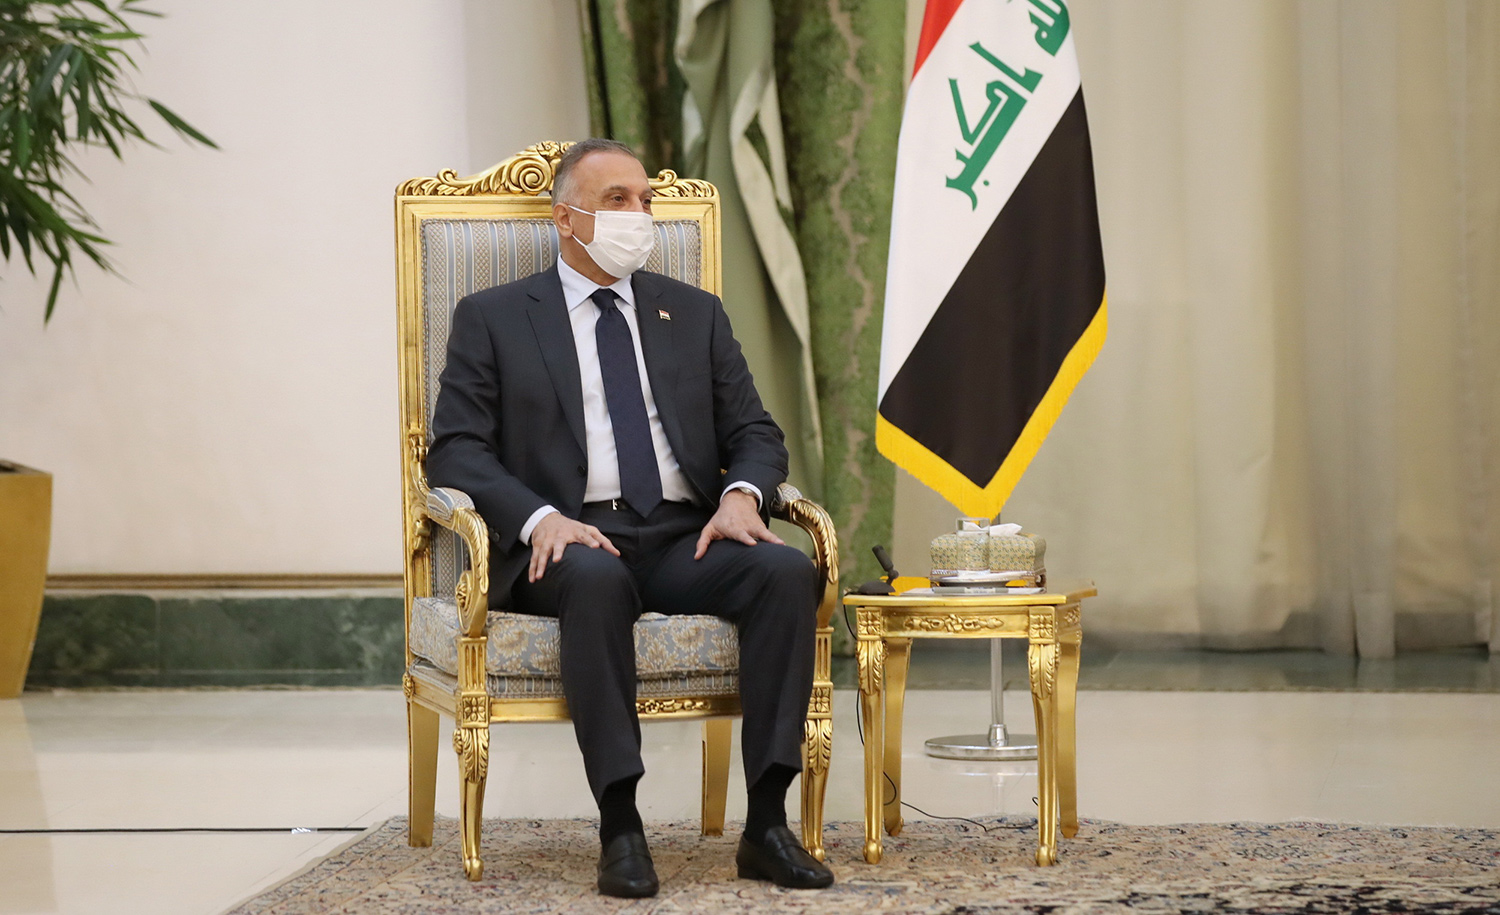 Iraqi Prime Minister Mustafa al-Kadhimi at a meeting with Iranian President Hassan Rouhani in Tehran on July 21, 2020. Presidency of Iran/Handout/Anadolu Agency via Getty Images.